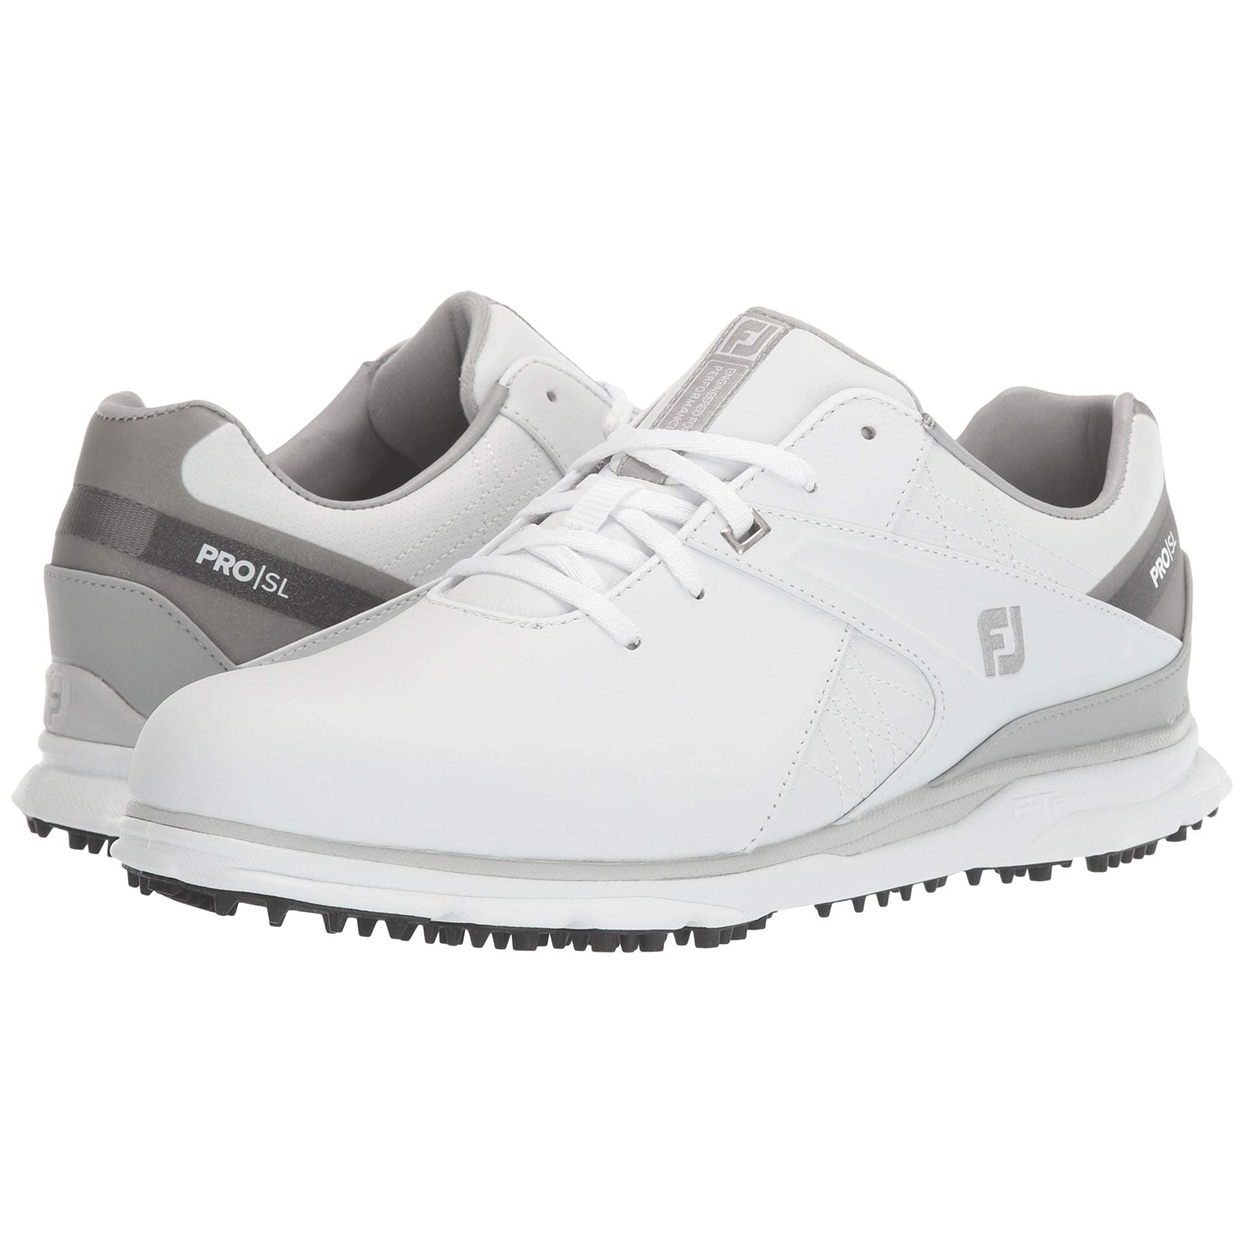 10 Most Comfortable Golf Shoes Of 2020 According To Reviews Travel Leisure